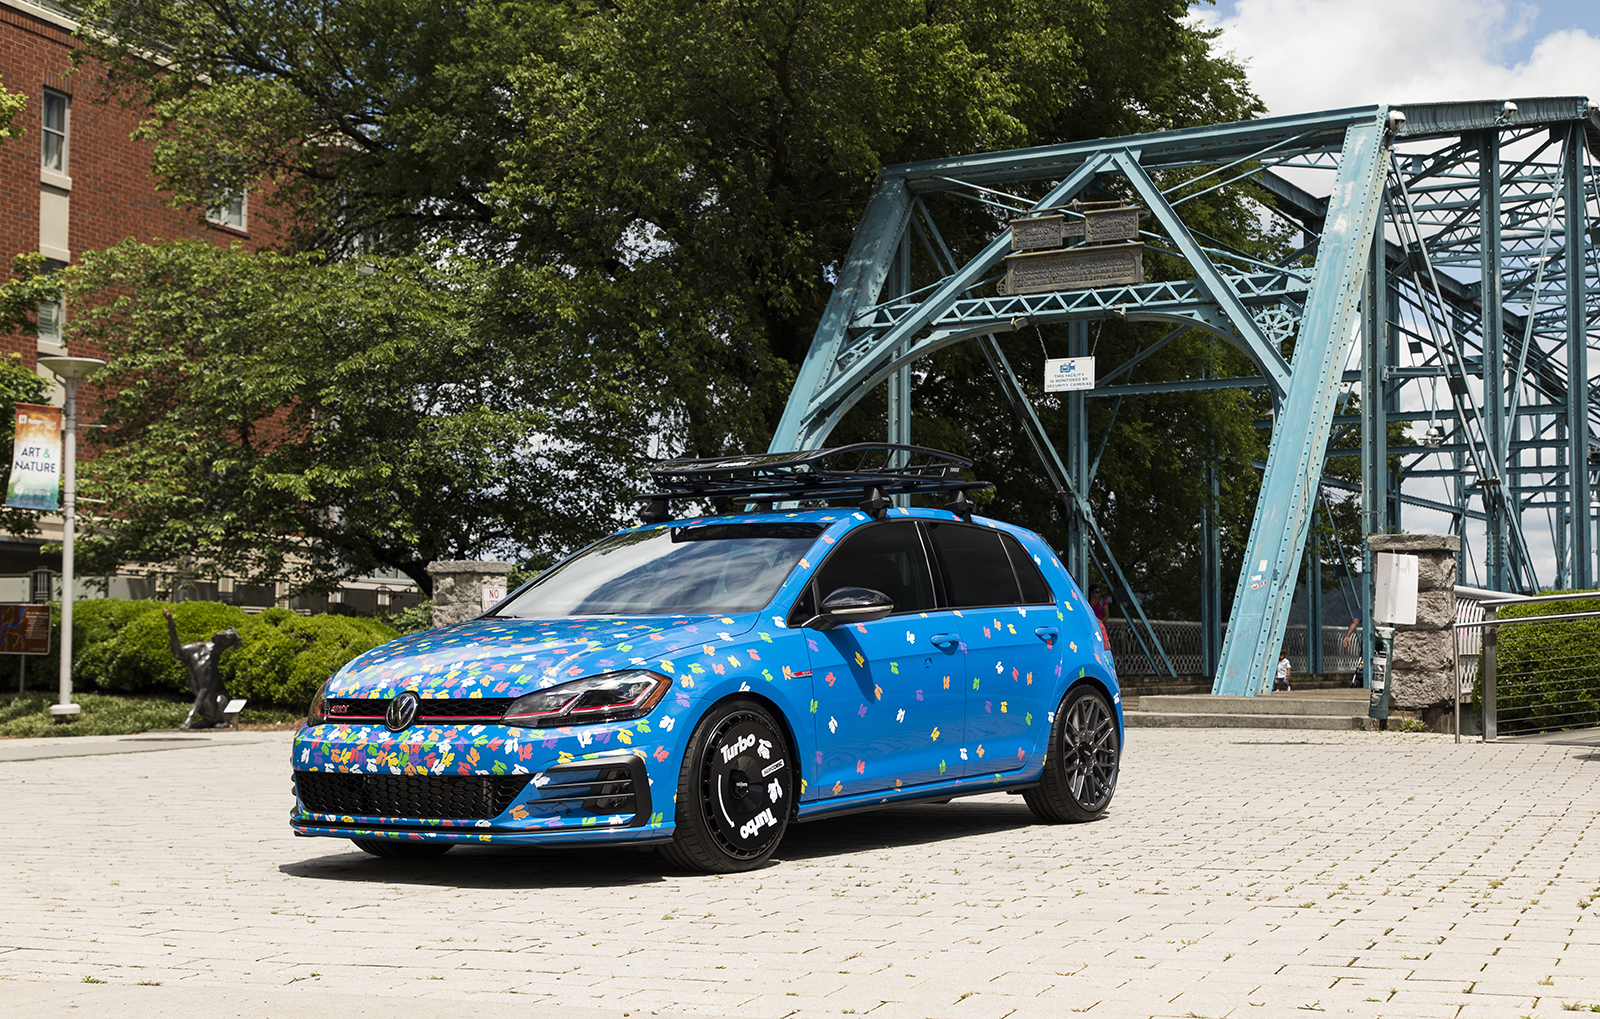 Golf_GTI_Rabbit_Confetti_Concept--9872